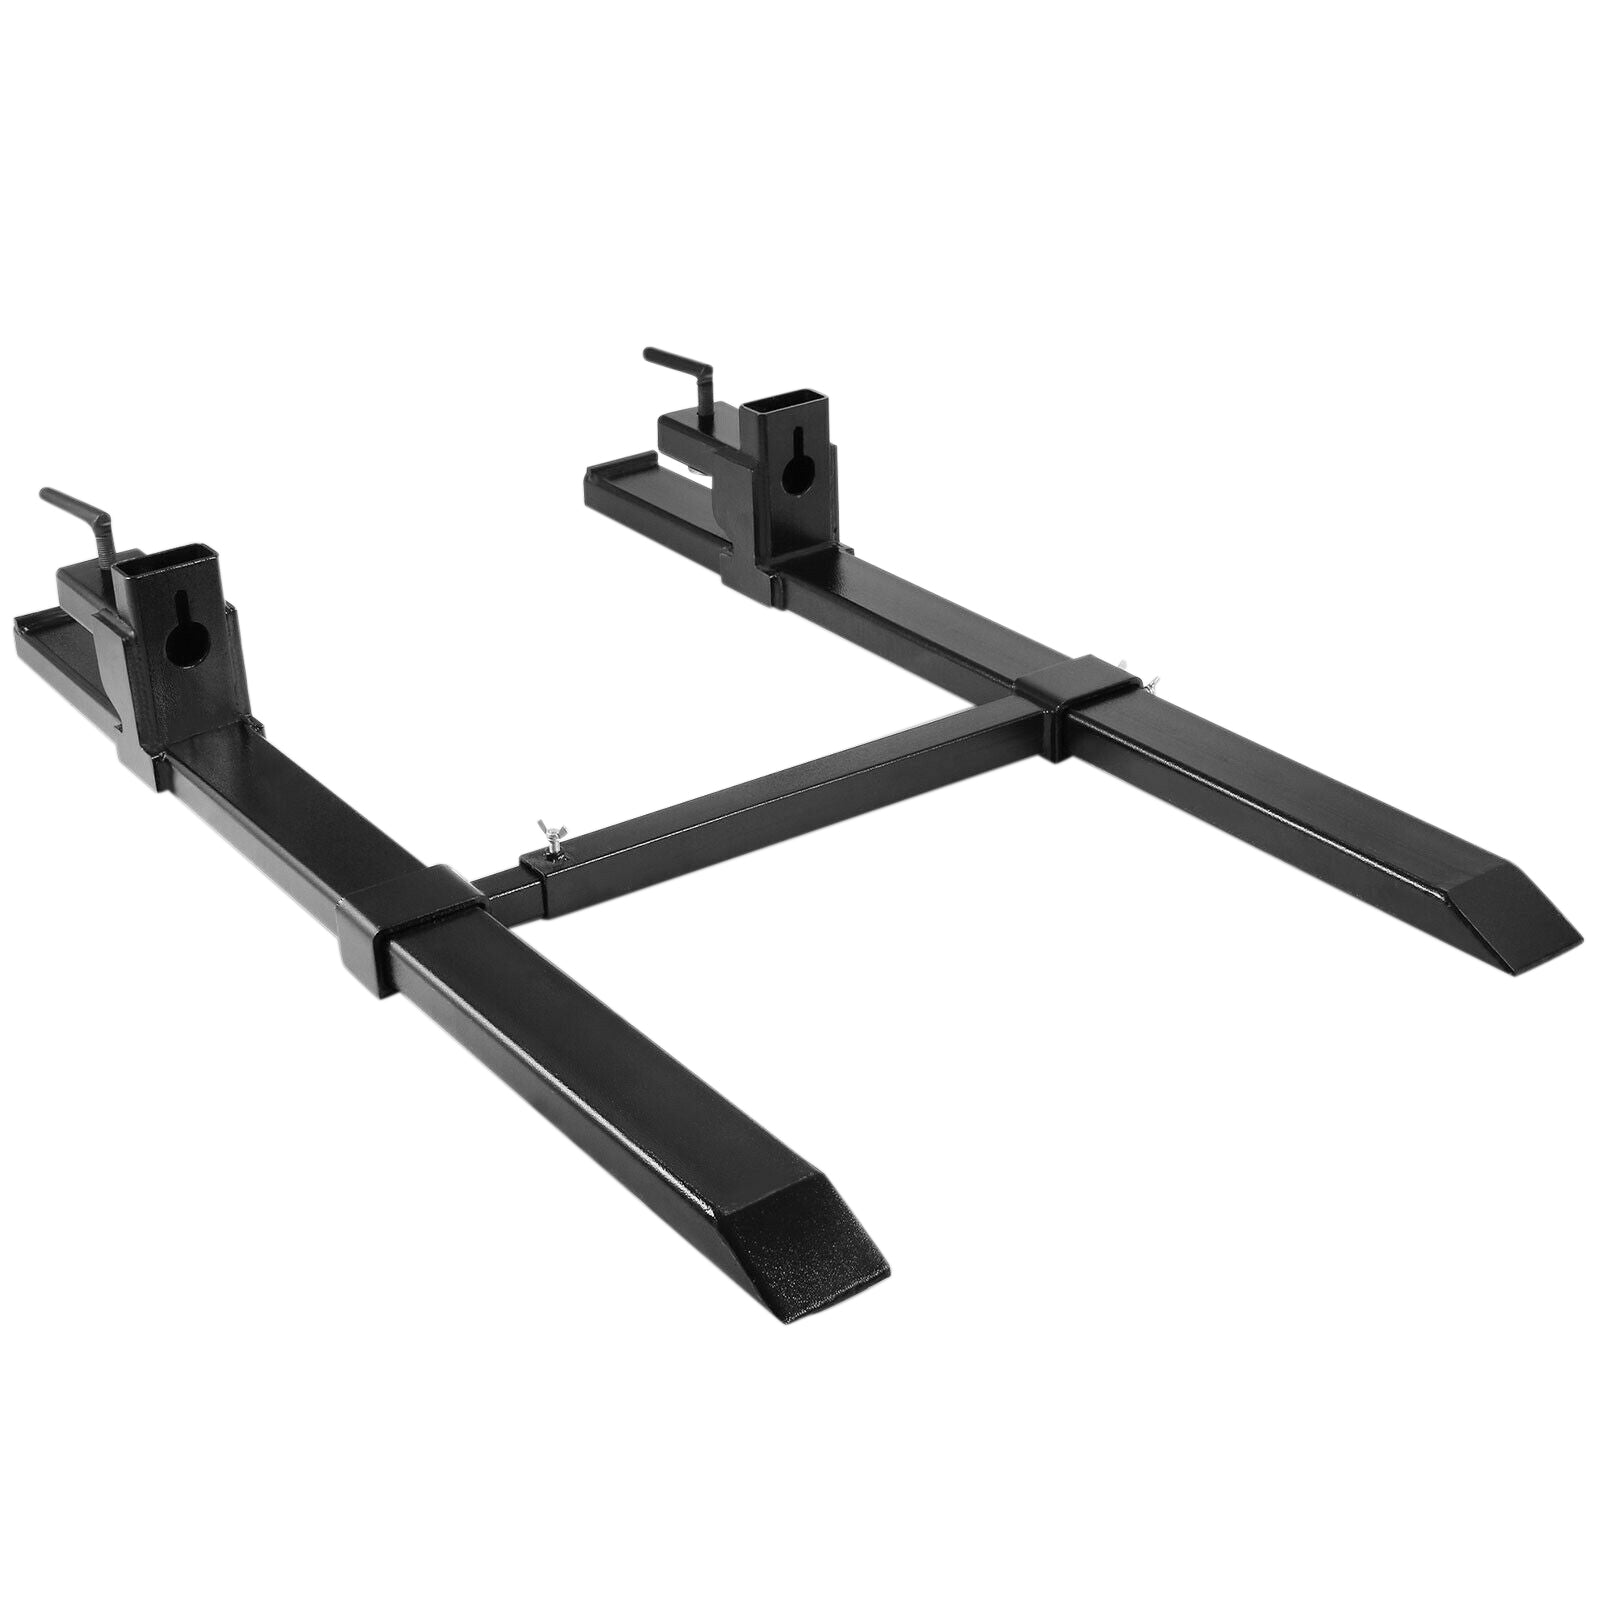 Hd 4000lbs Clamp On Pallet Forks Loader Bucket Tractor Stabilizer Bar